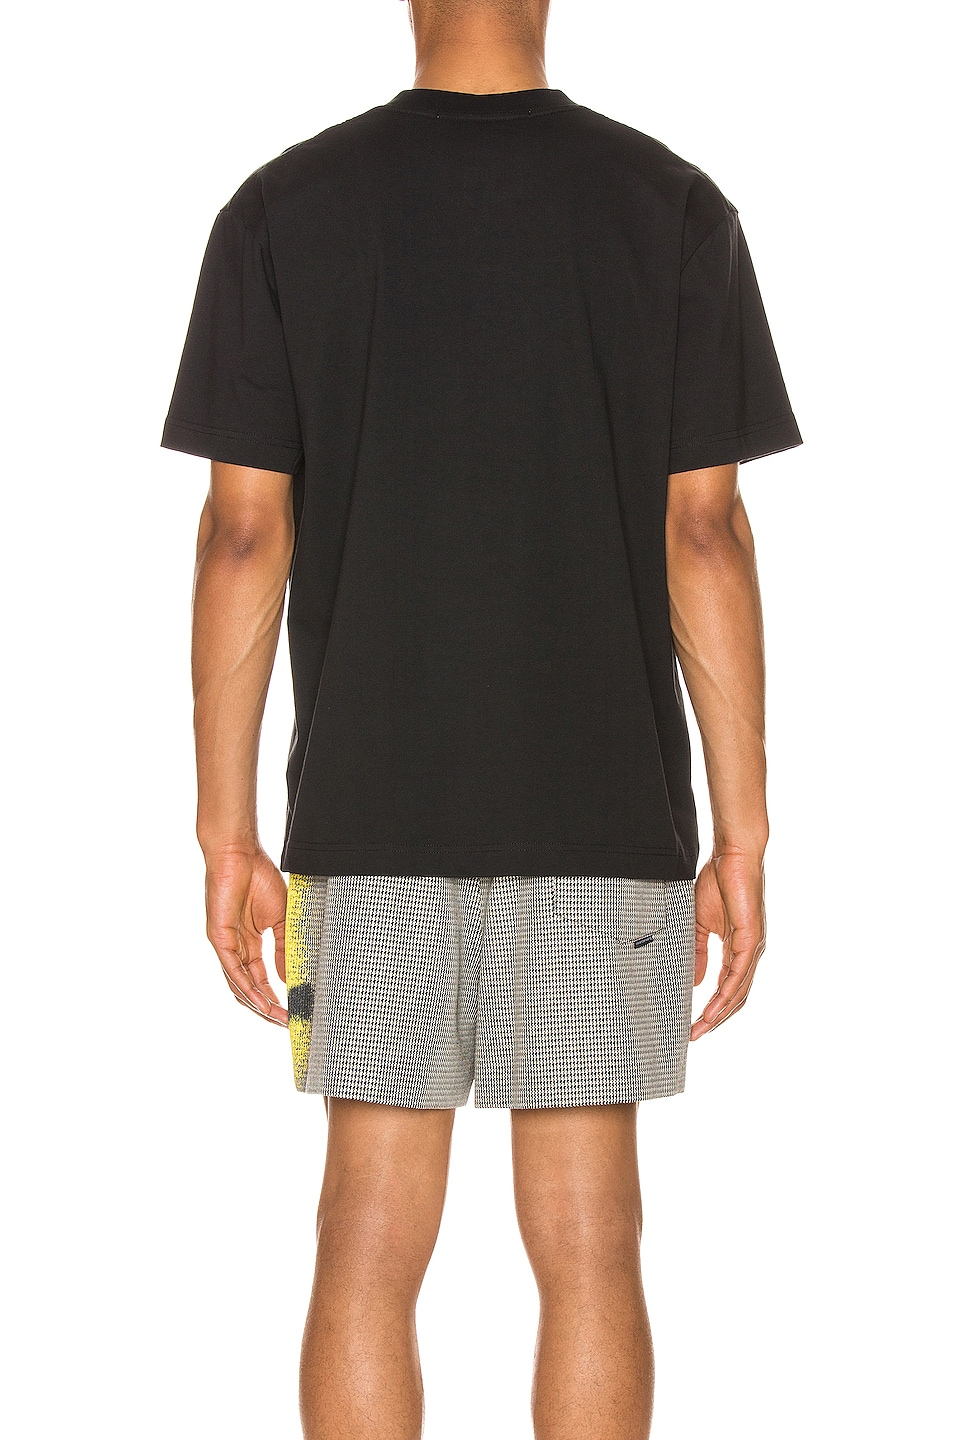 Image 3 of Alexander Wang Graphic T-Shirt in Black